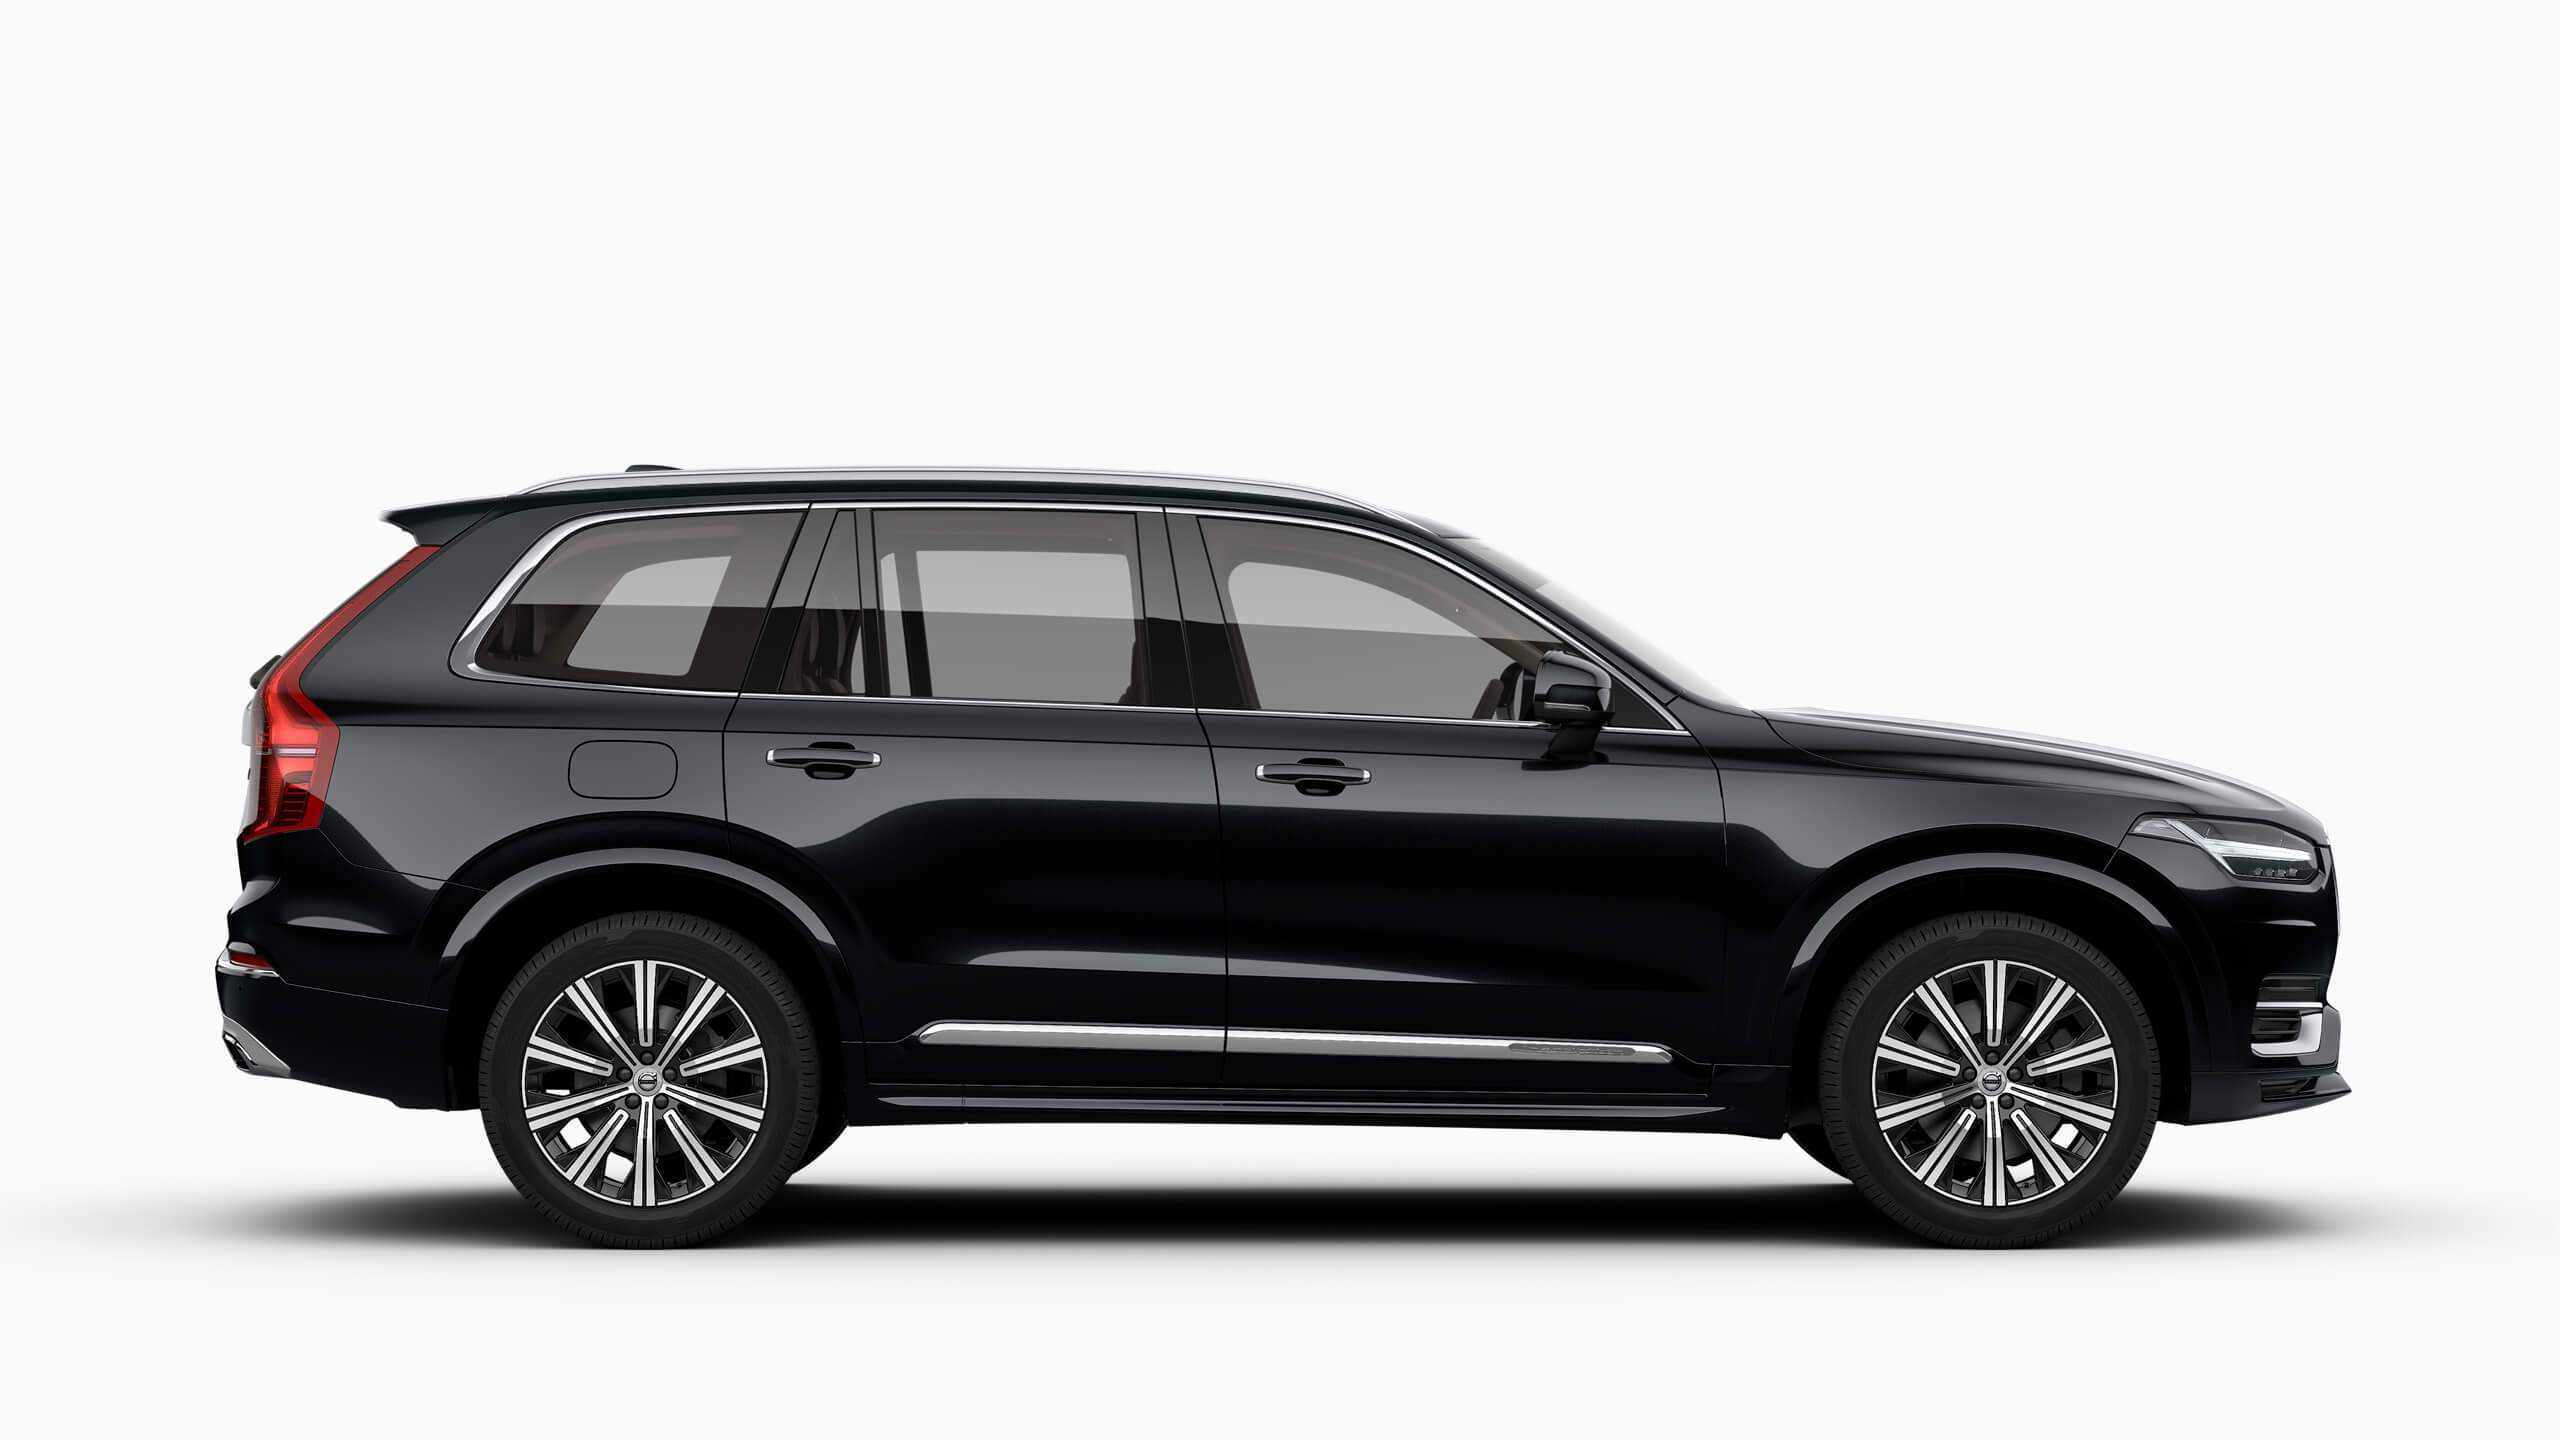 01_Onyx_Black_metallic_XC90